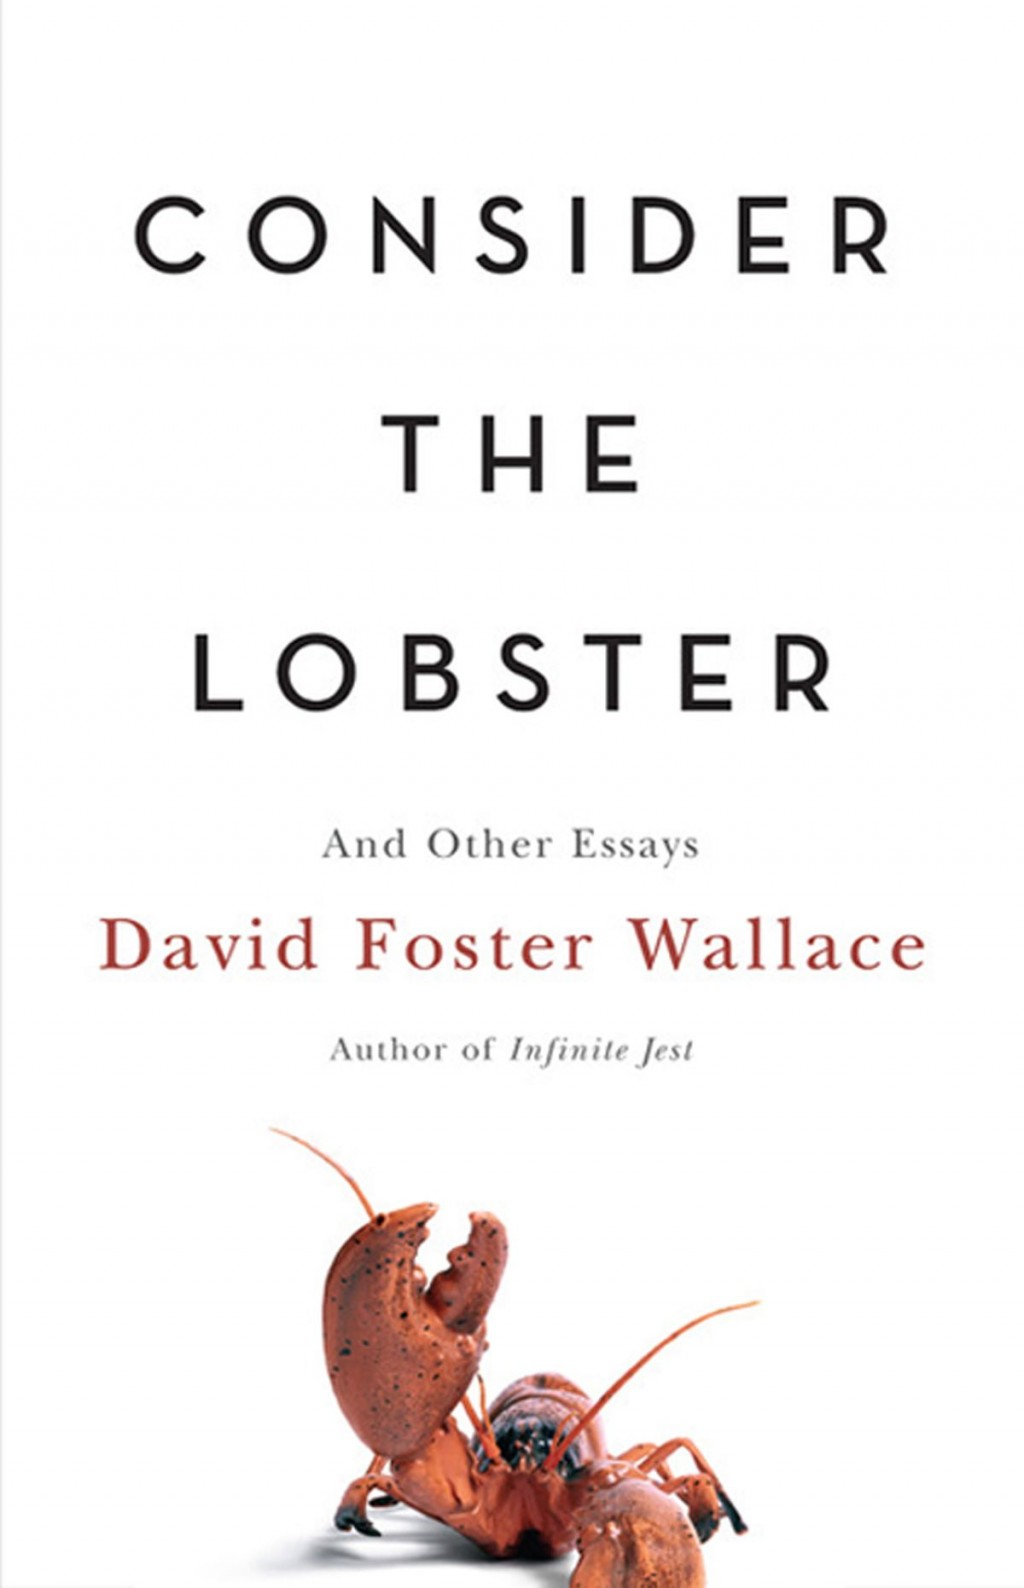 002 Consider The Lobster Essay Exceptional Rhetorical Analysis Review Large